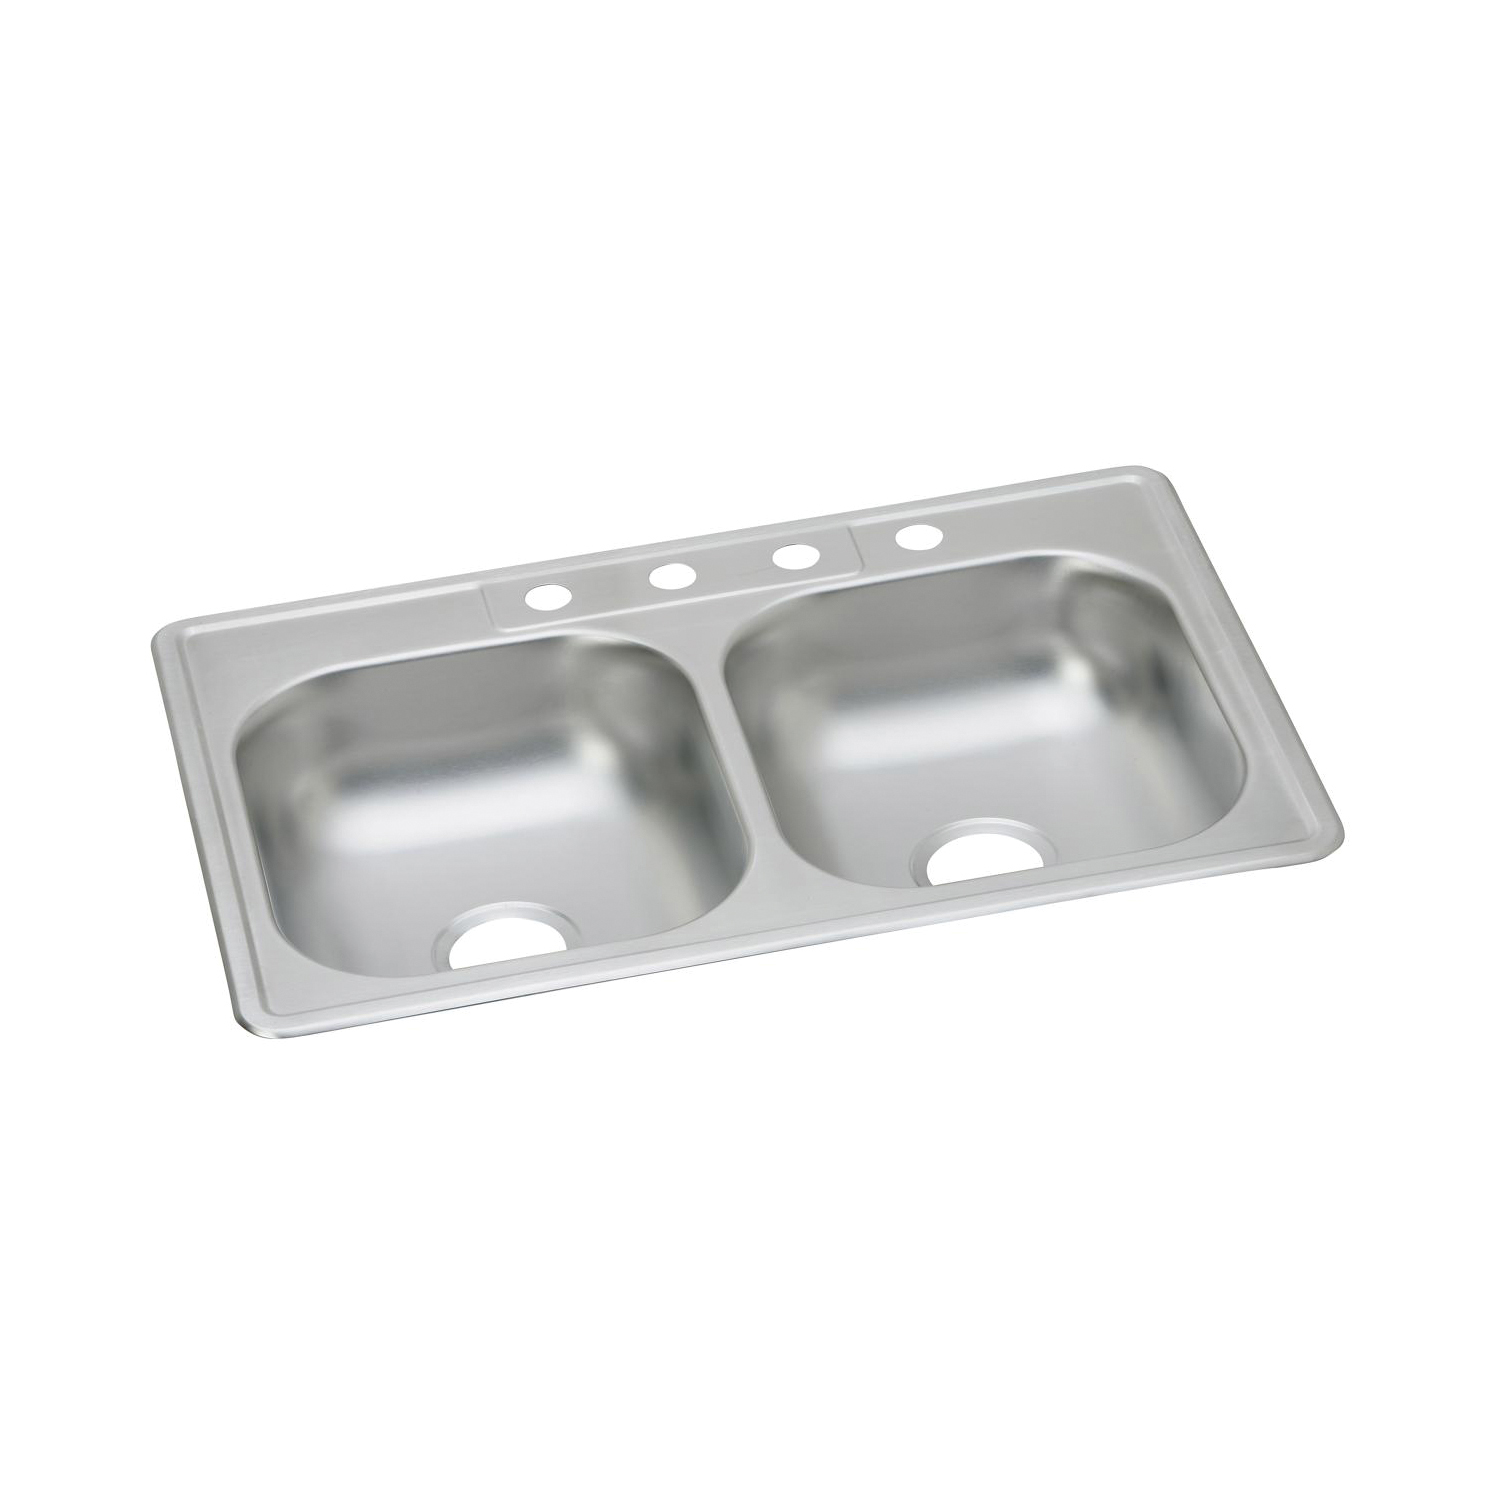 Elkay® K233224 Kitchen Sink, Dayton®, Rectangular, 14 in L x 15-3/4 in W x 5-7/8 in D Left Bowl, 14 in L x 15-3/4 in W x 5-7/8 in D Right Bowl, 4 Faucet Holes, 33 in L x 22 in W x 6-1/16 in H, Top Mount, Stainless Steel, Satin